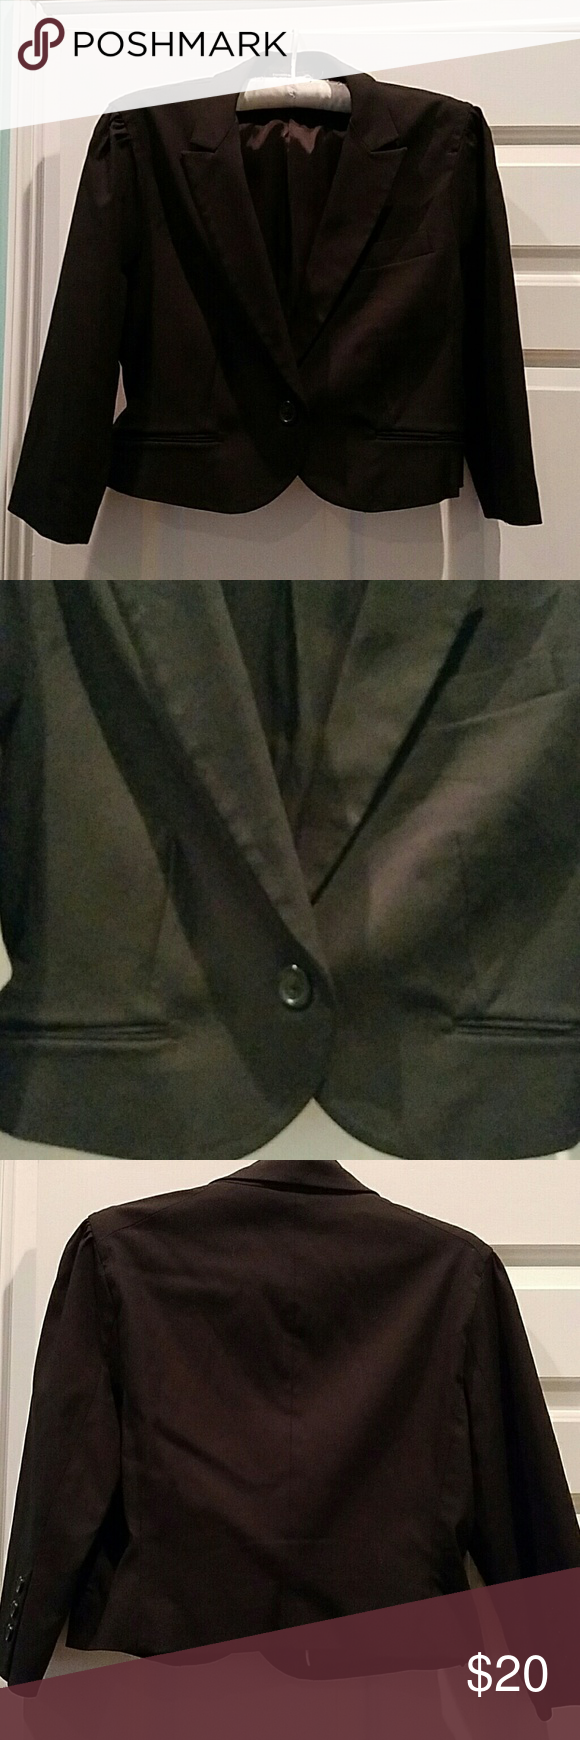 EXPRESS DESIGN CROP 3/4 LENGTH SLEEVE BLAZER Really well made and great blazer to layer over long sleeve blouses and dresses. In gently worn condition.  The blazer definitely runs small. Made of rayon and nylon for stretch. Express Design Studio  Jackets & Coats Blazers